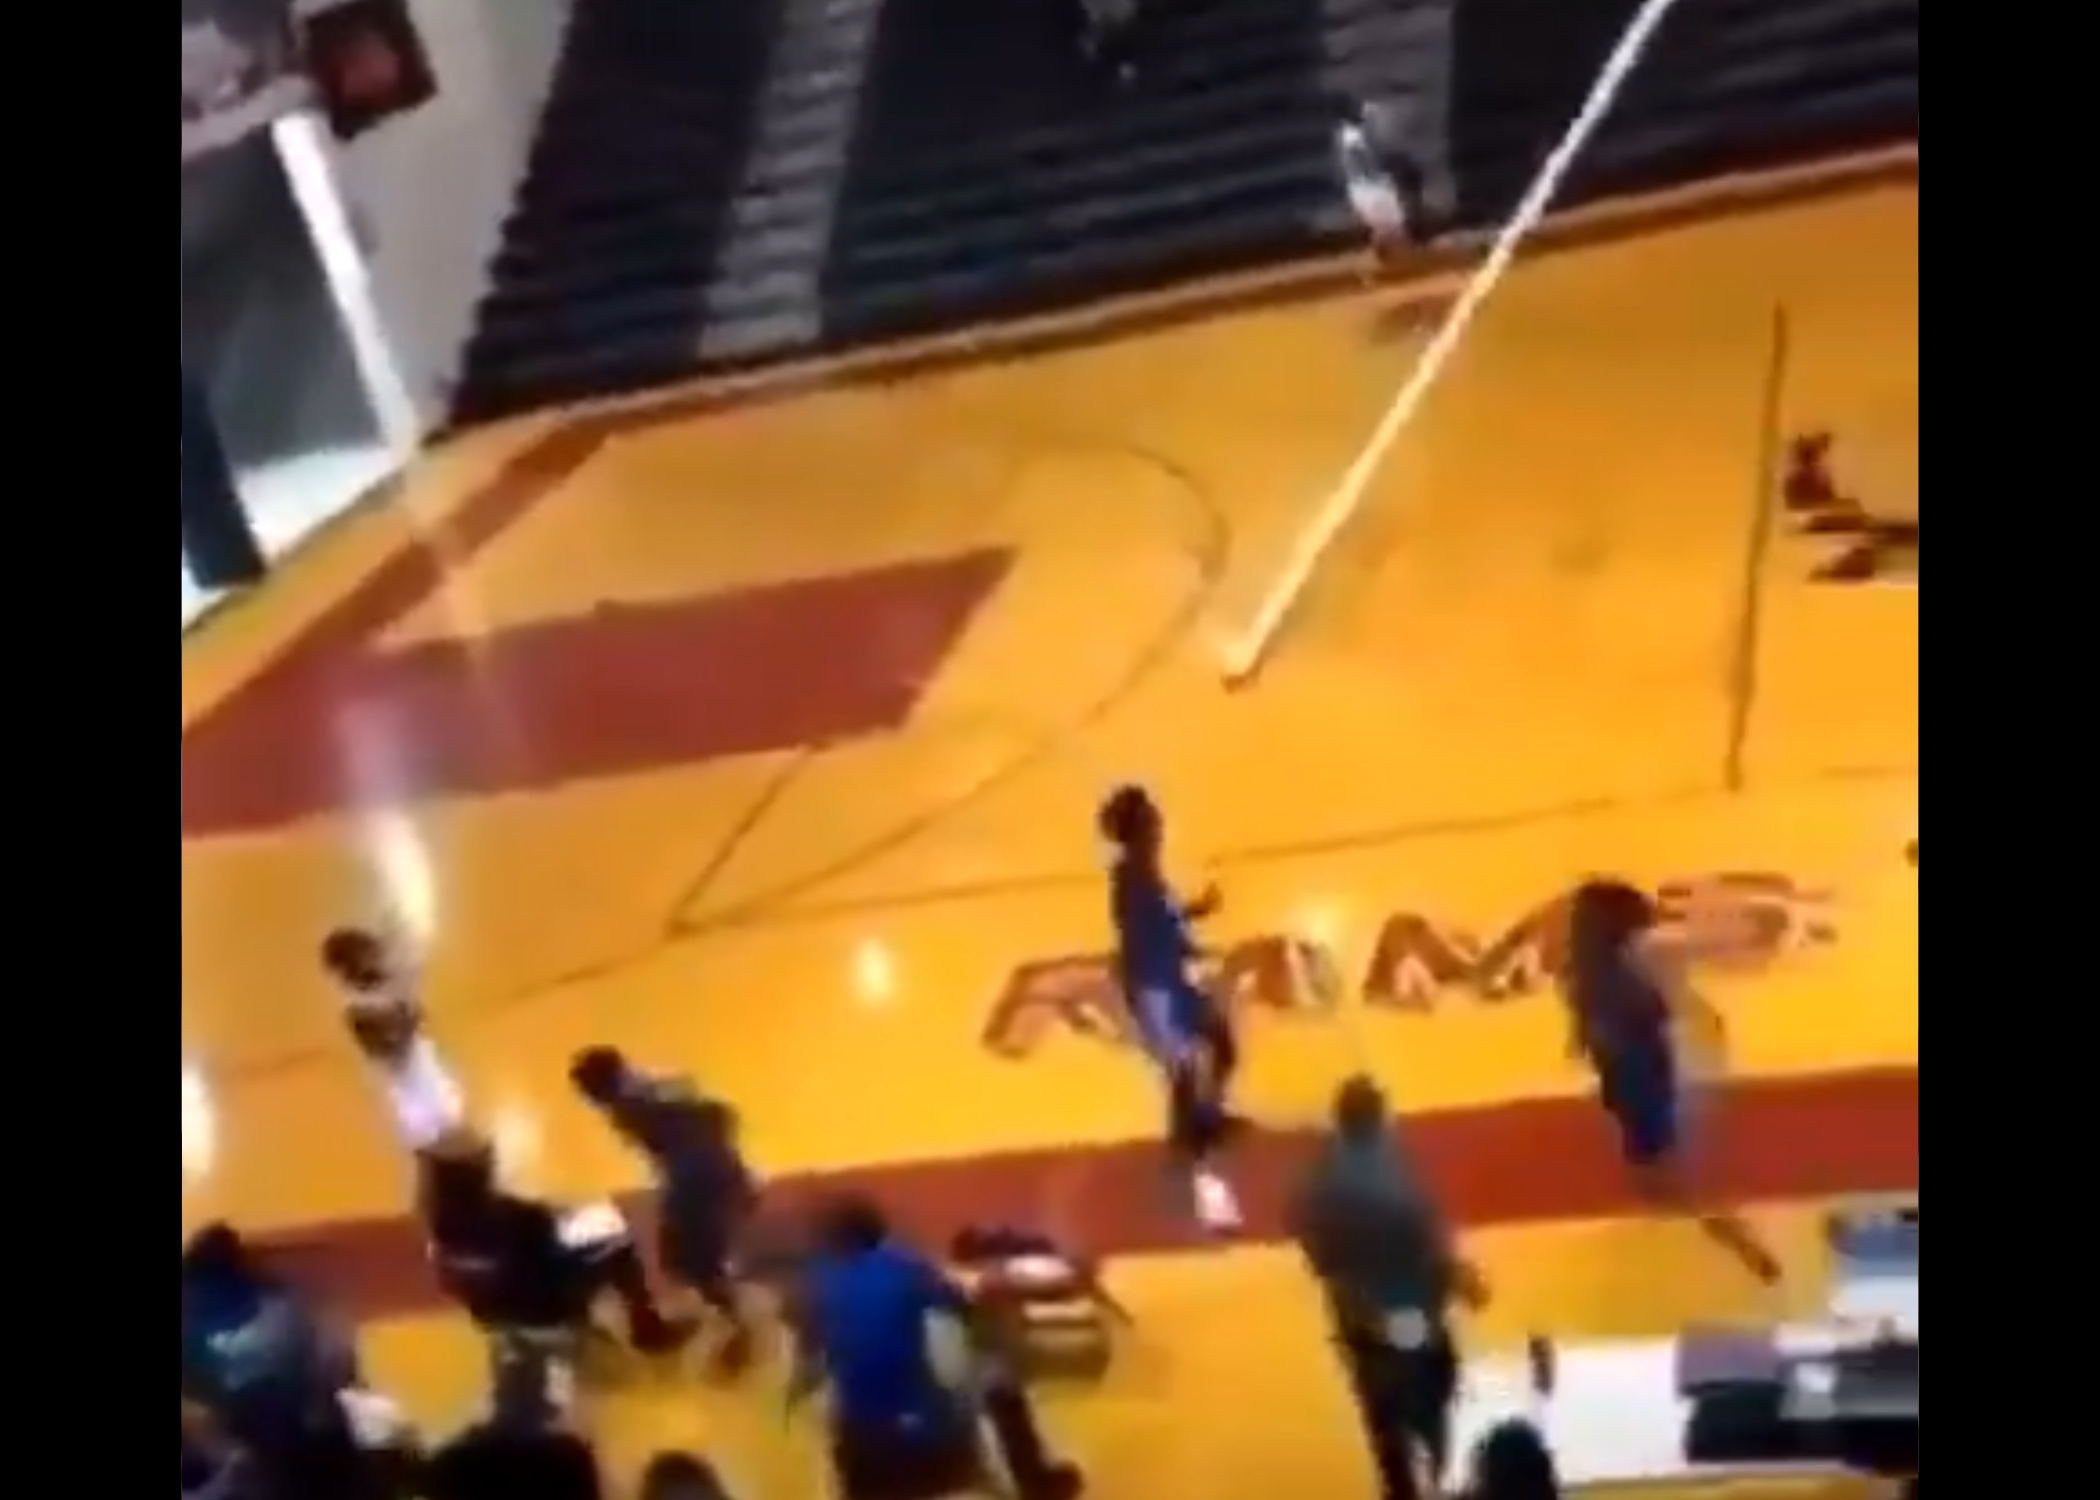 VIDEO: Ramsay basketball star tears down backboard